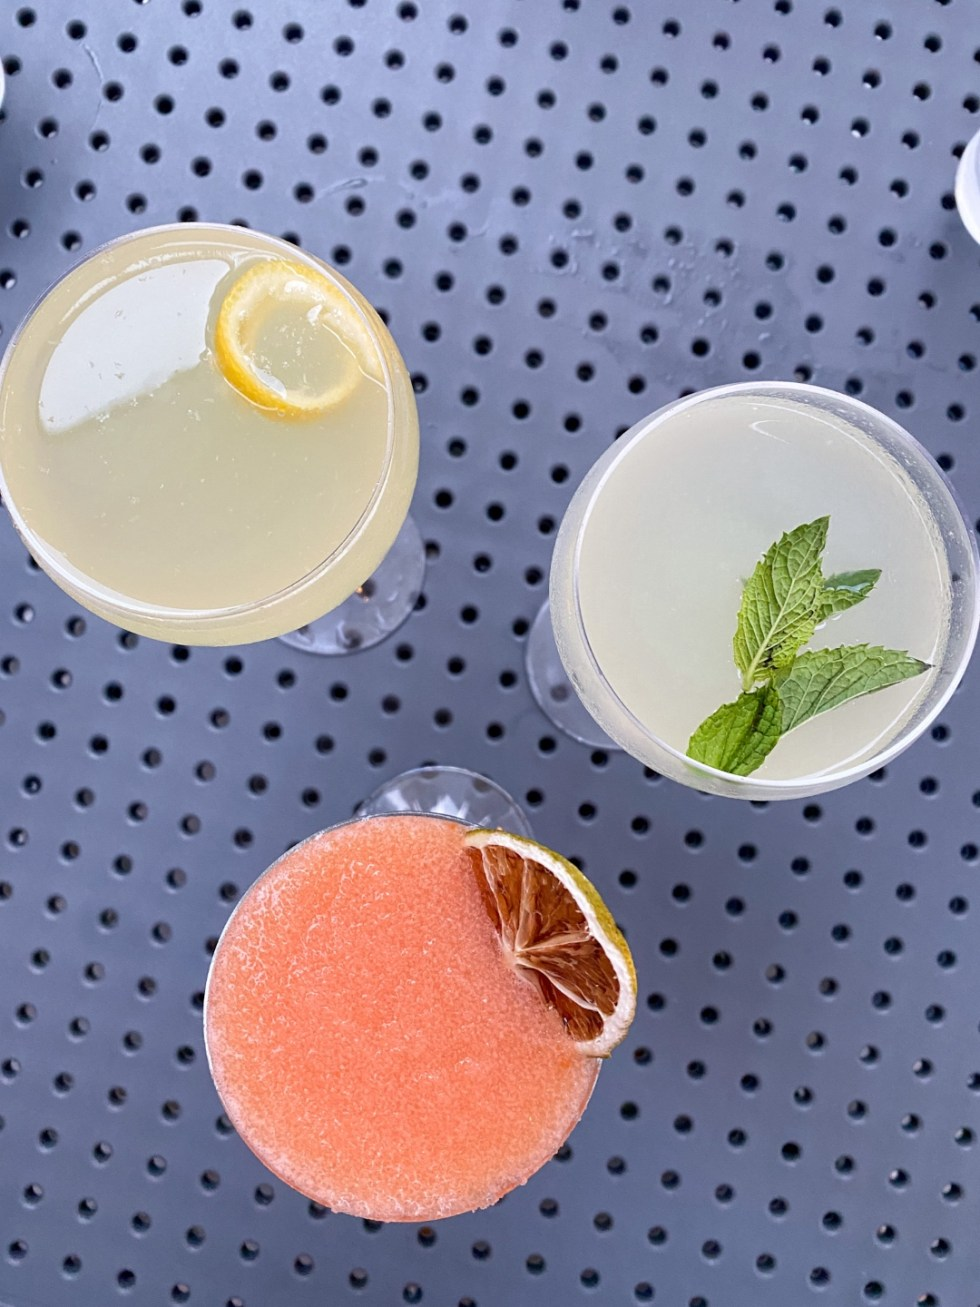 23 Awesome Things To Do in Durham - I'm Fixin' To - @imfixintoblog | Things to do in Durham by popular NC travel blog, I'm Fixin' To: image of three different cocktail drinks.